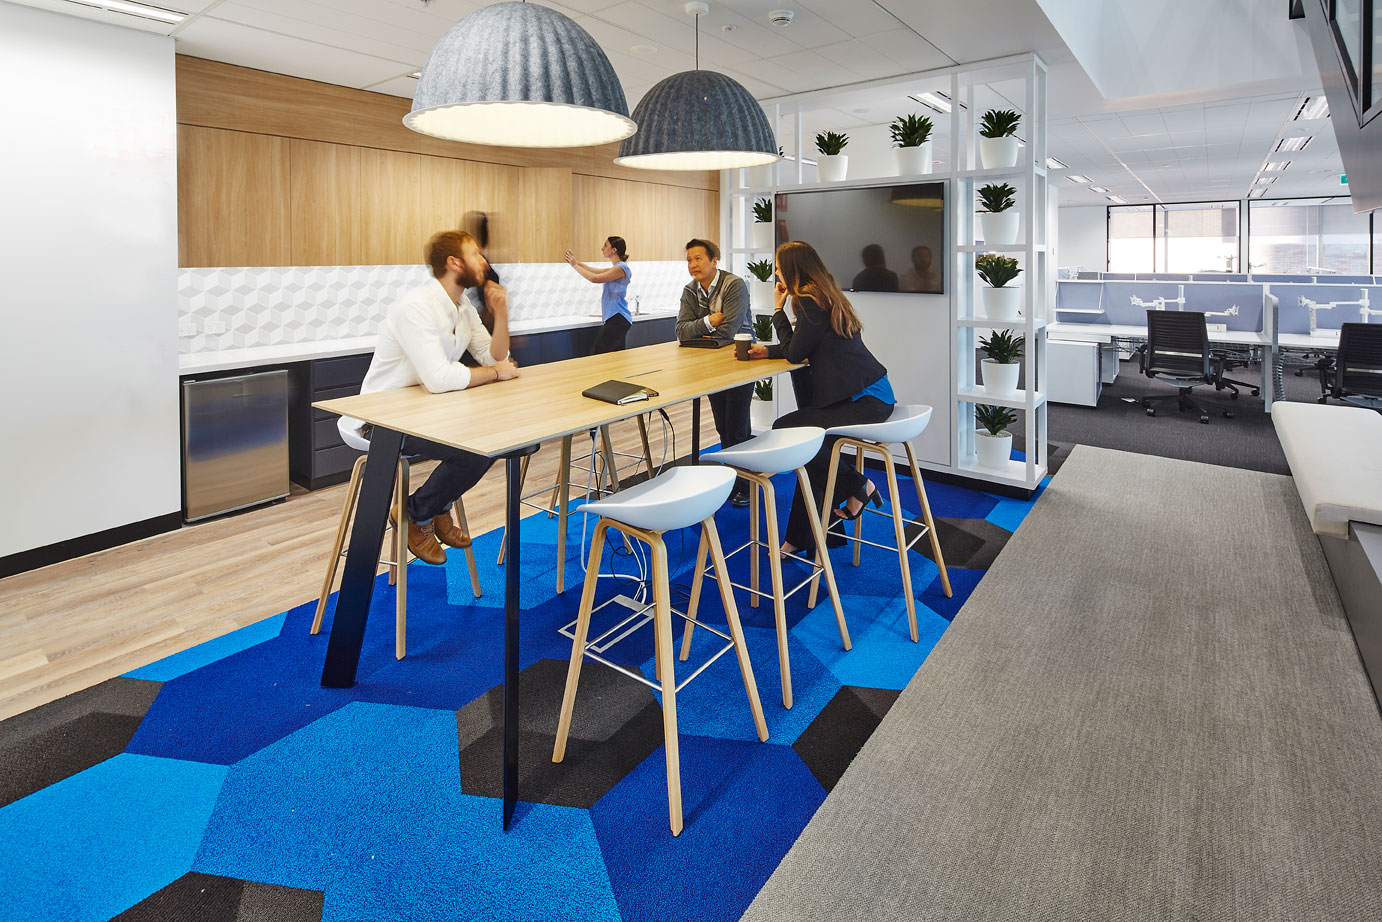 Office Workplace Design Trends: 5 Disruptive Office Design Trends For The Modern Workplace